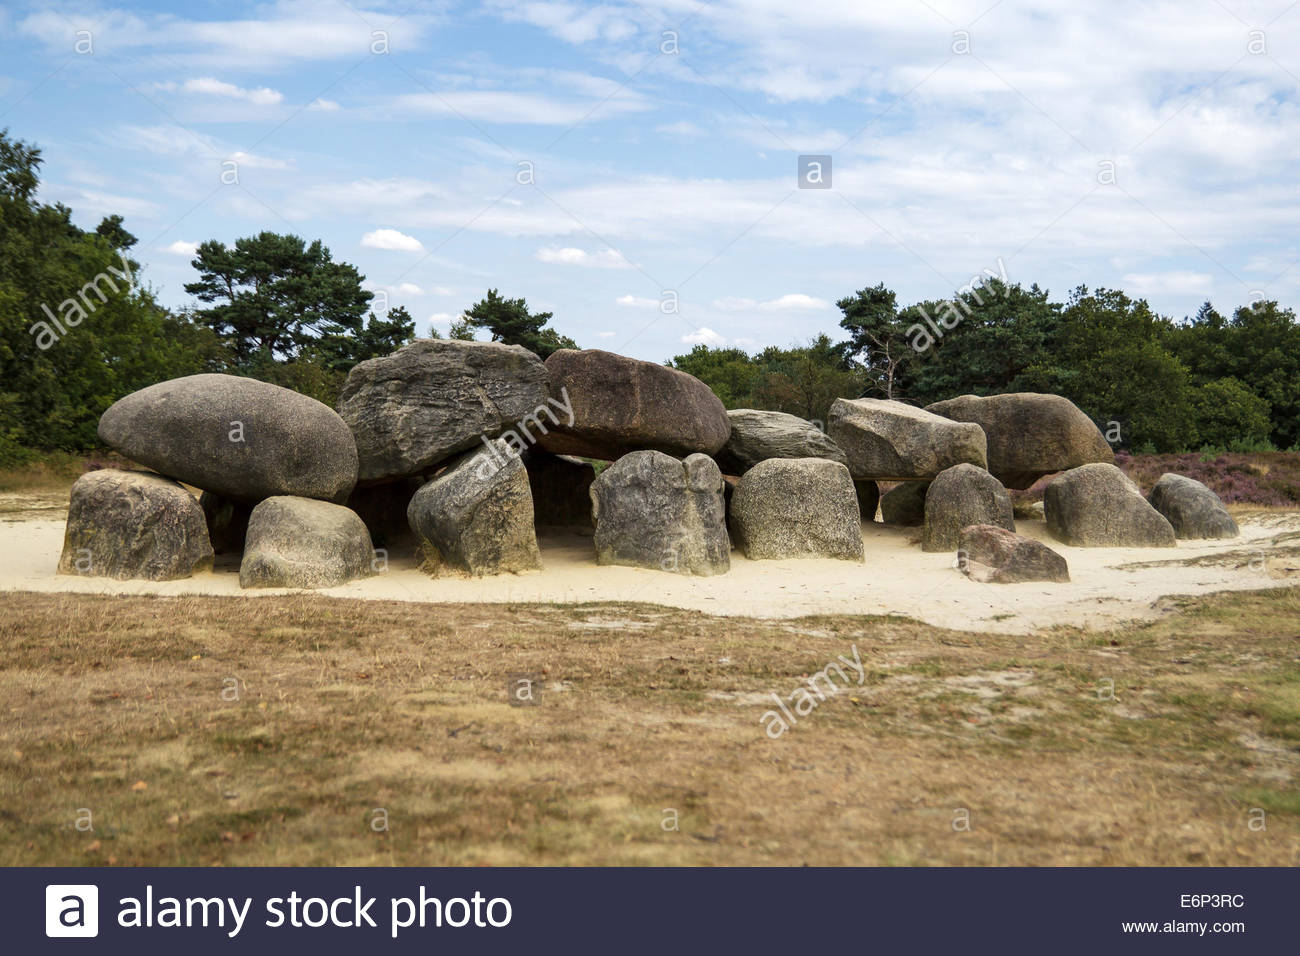 An ancient megalithic tomb in the Netherlands. - Stock Image